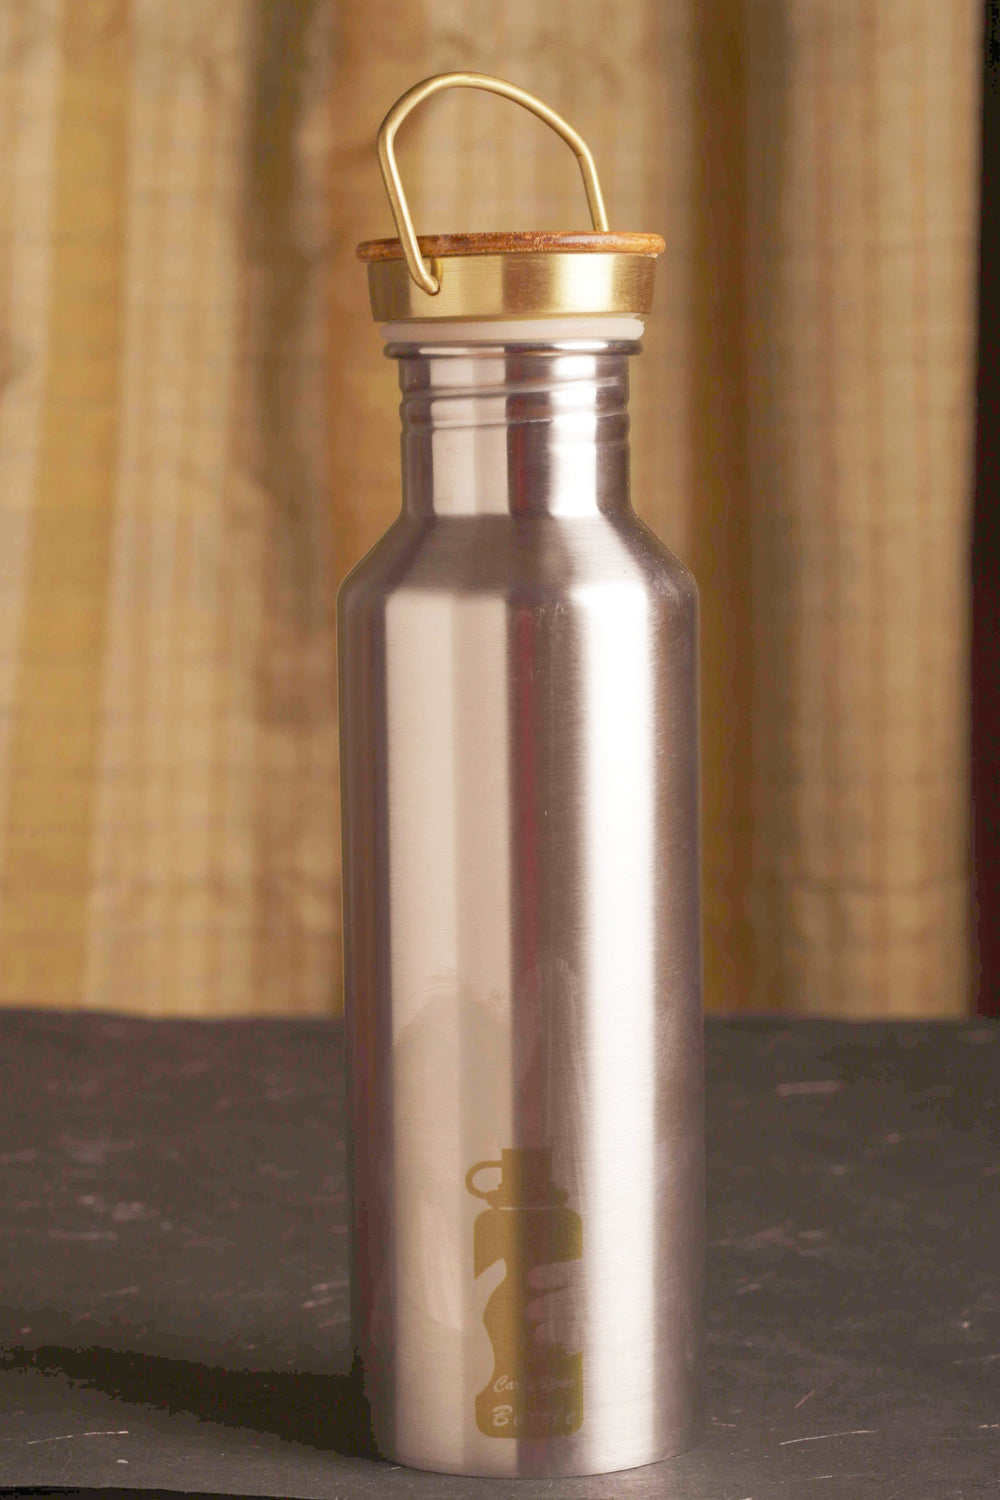 Stainless steel water bottle with wooden cover